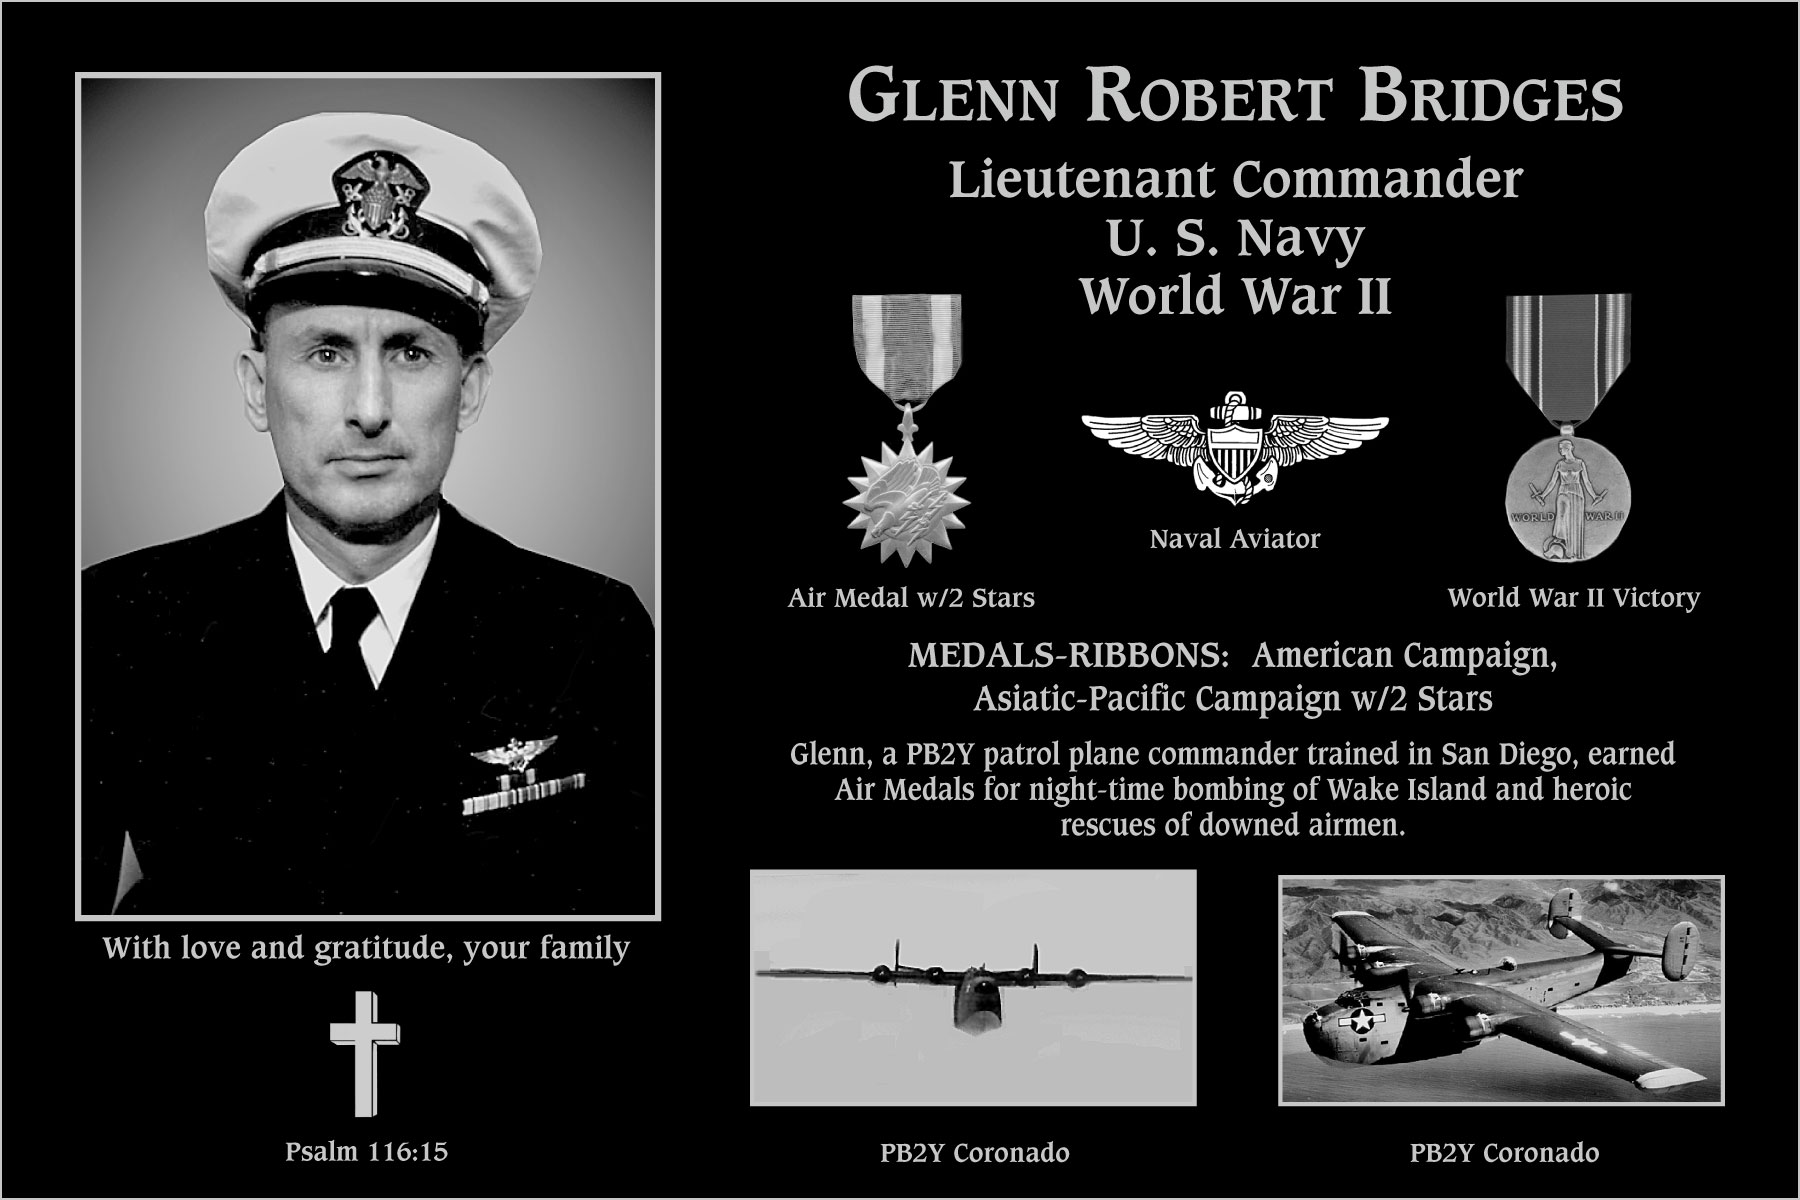 Glenn Robert Bridges